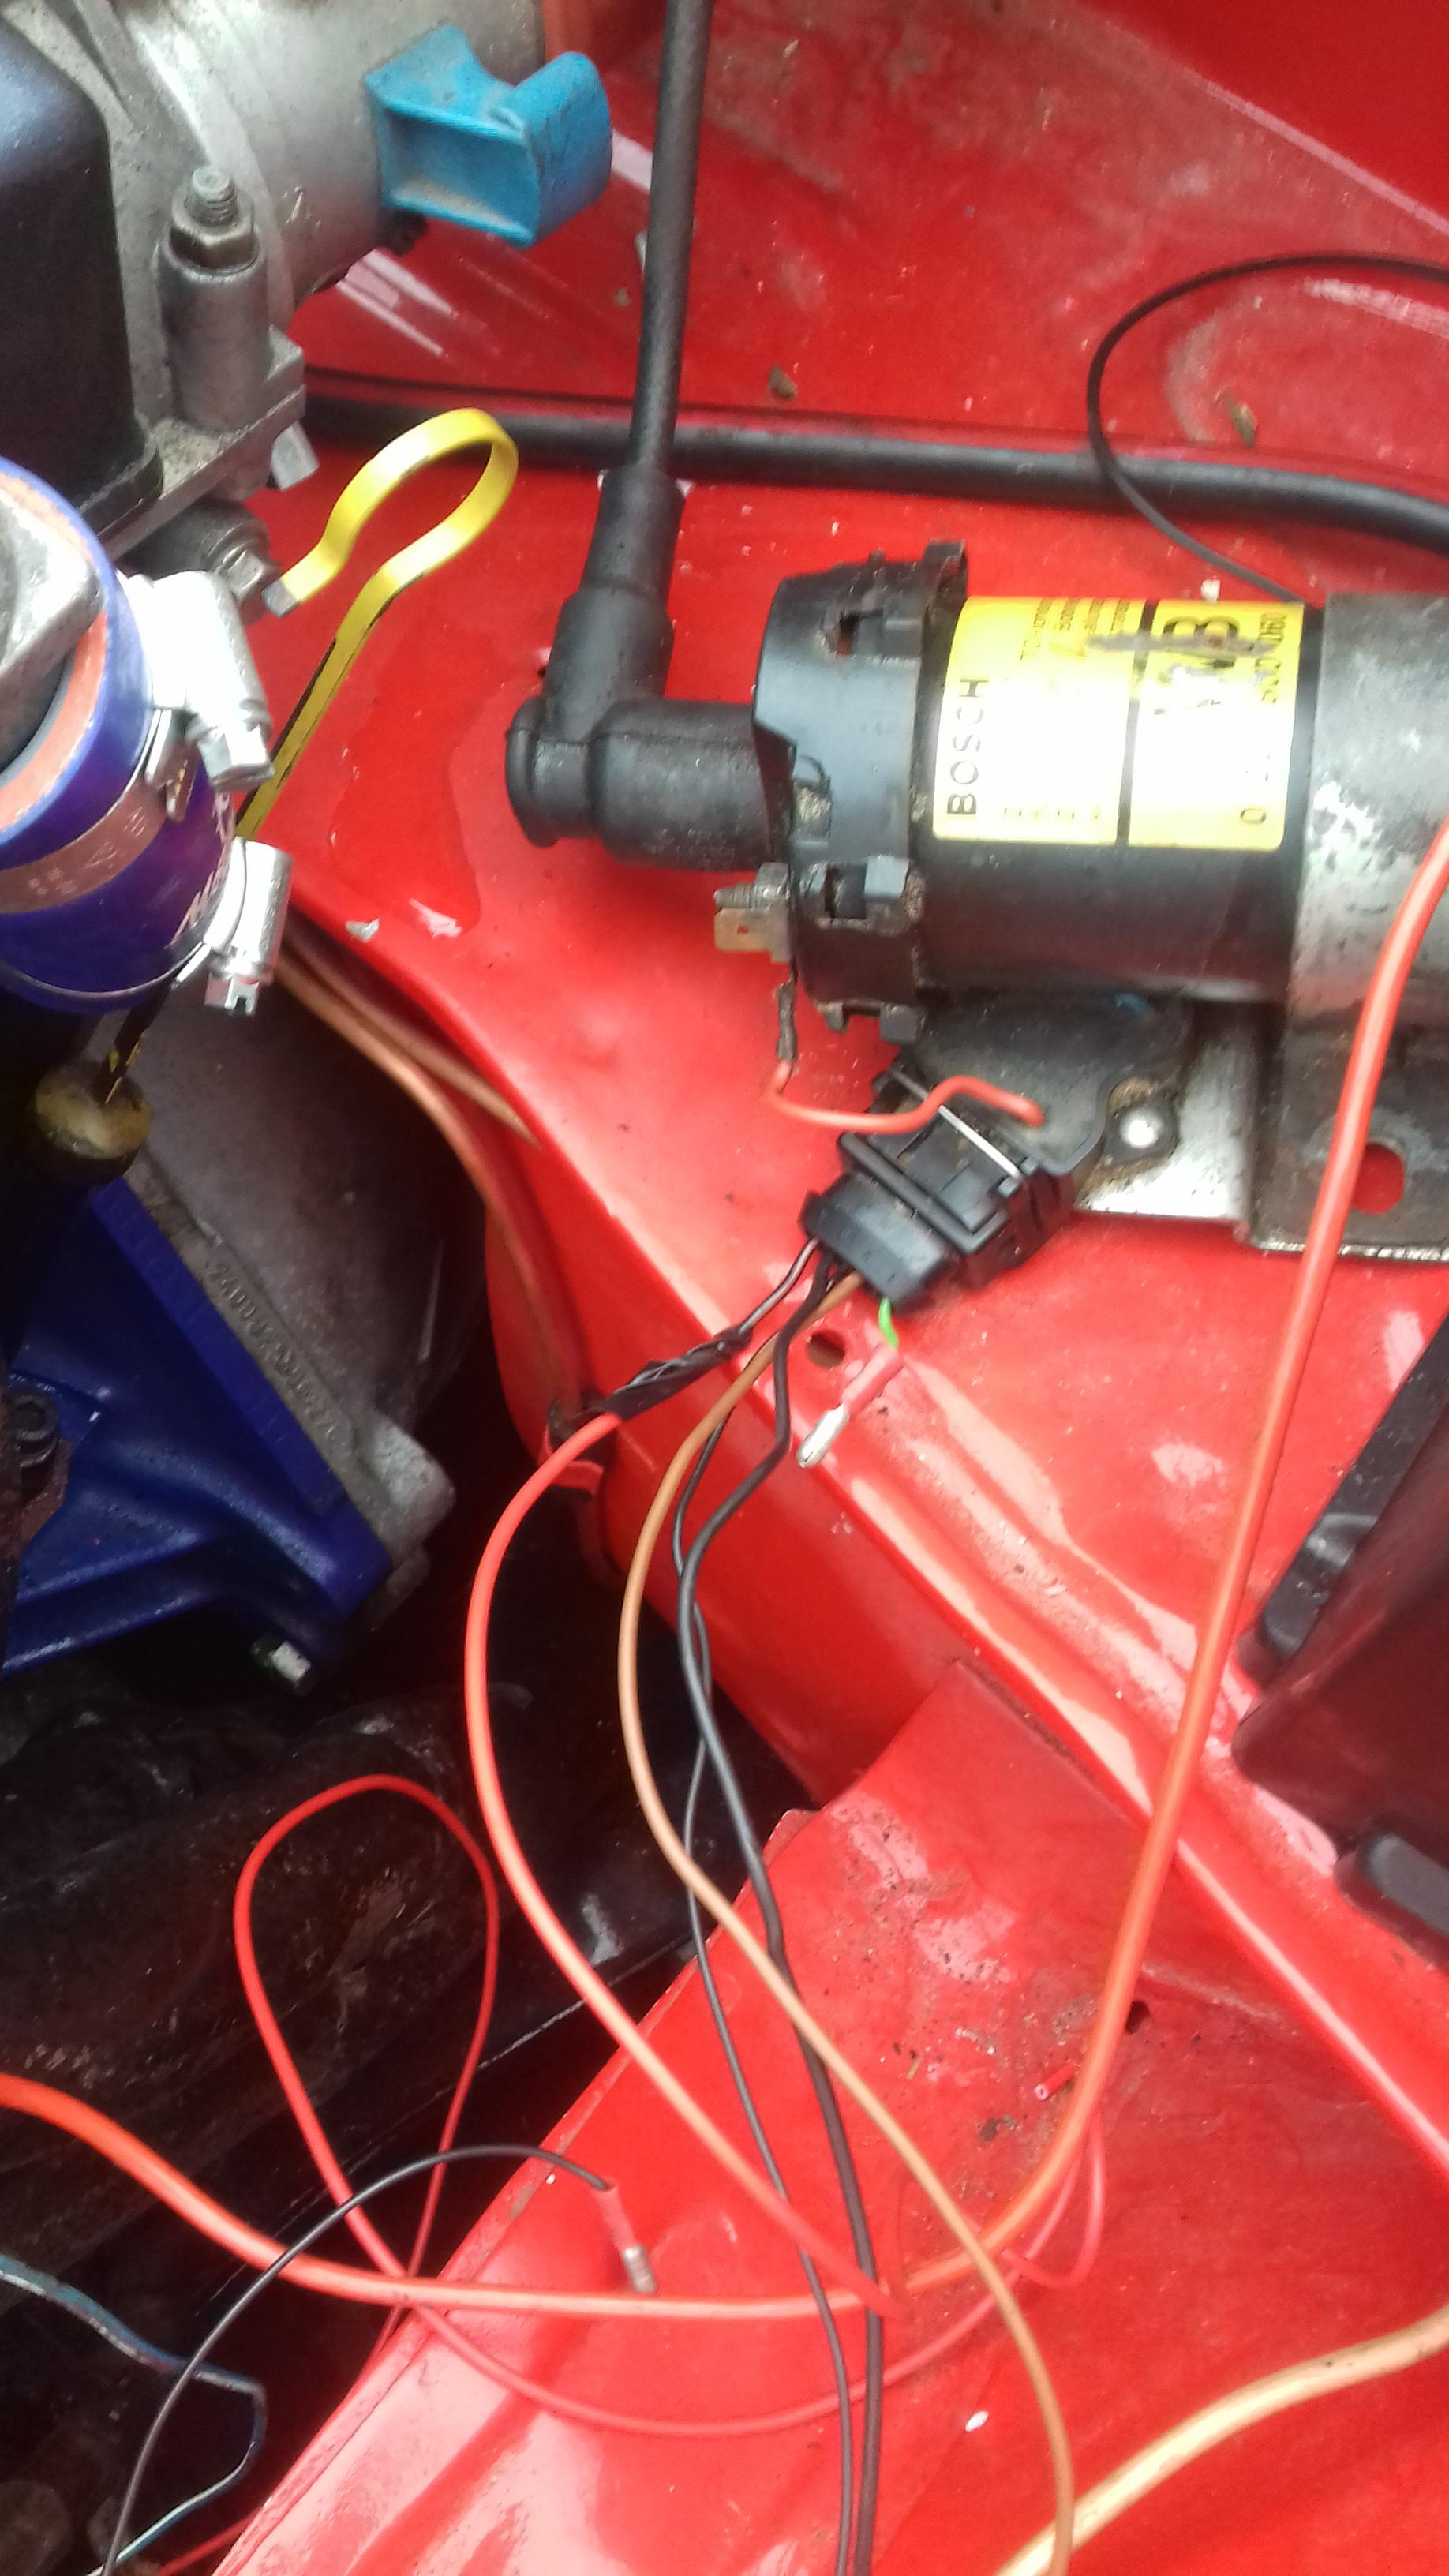 wiring dizzy for redtop on 45s - basic tech help - opel manta, Wiring diagram